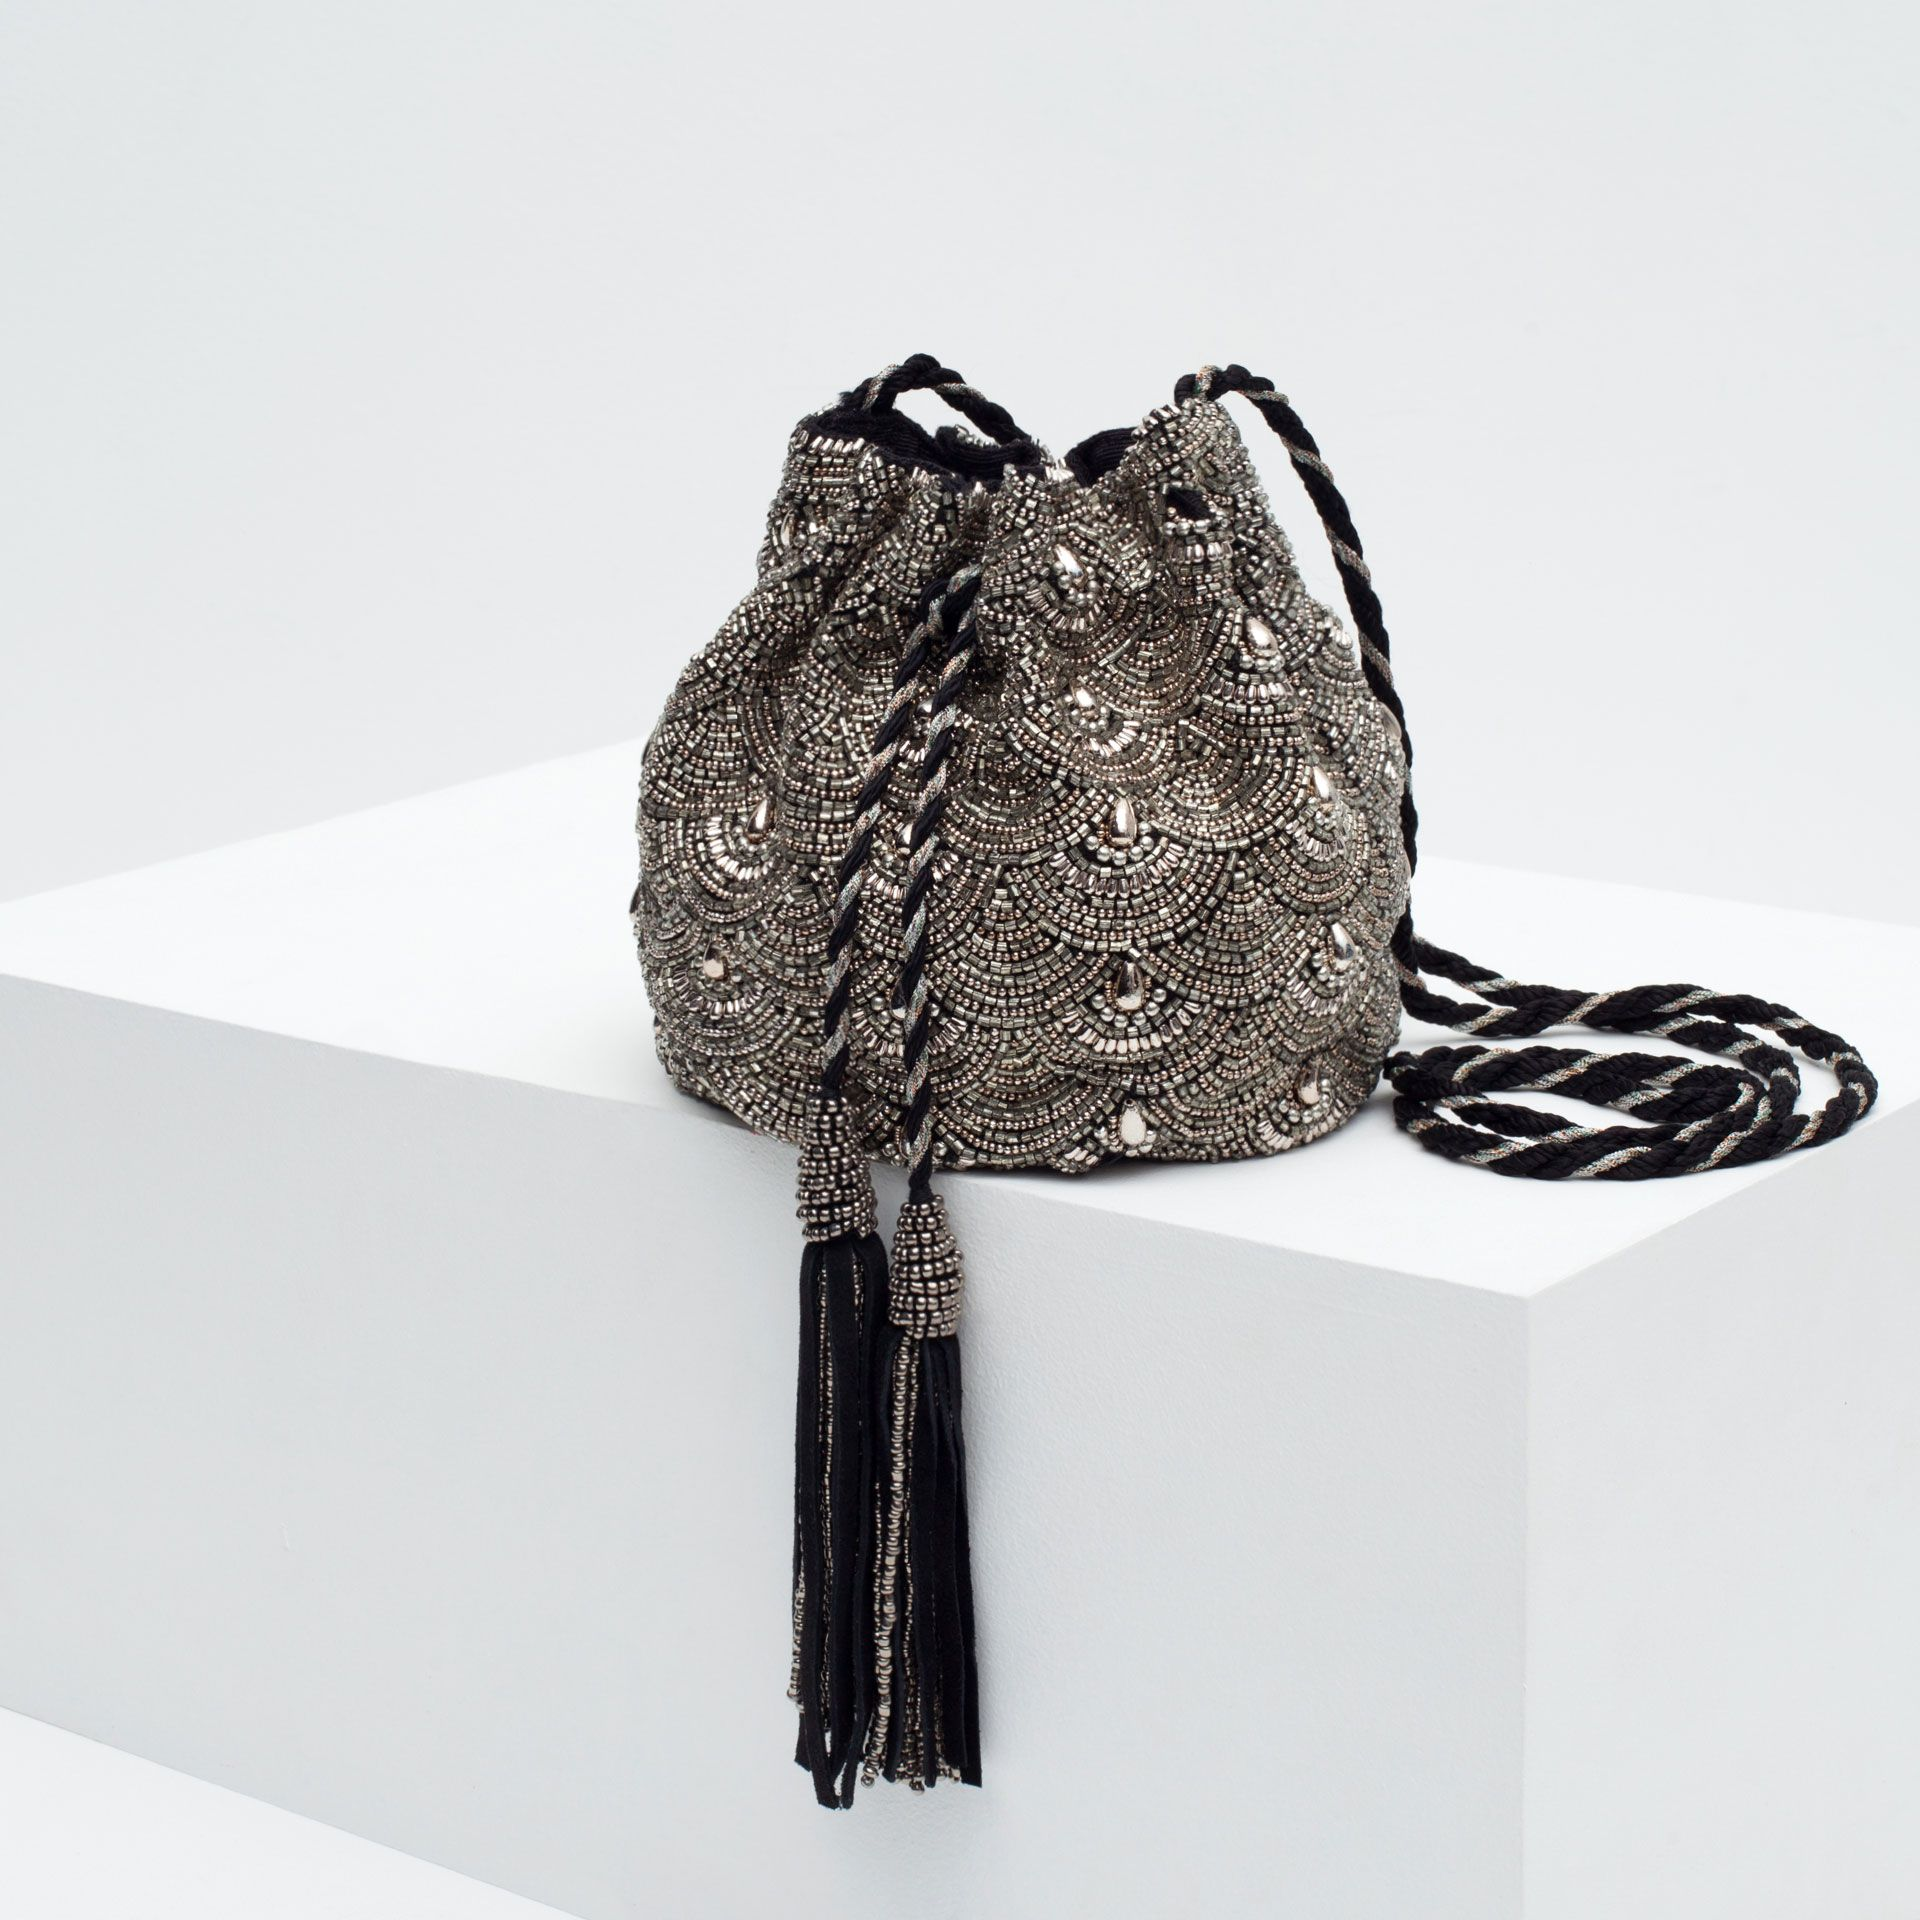 BEADED DRAWSTRING BAG - View all - Bags - WOMAN - PROMOCIJA | ZARA ...